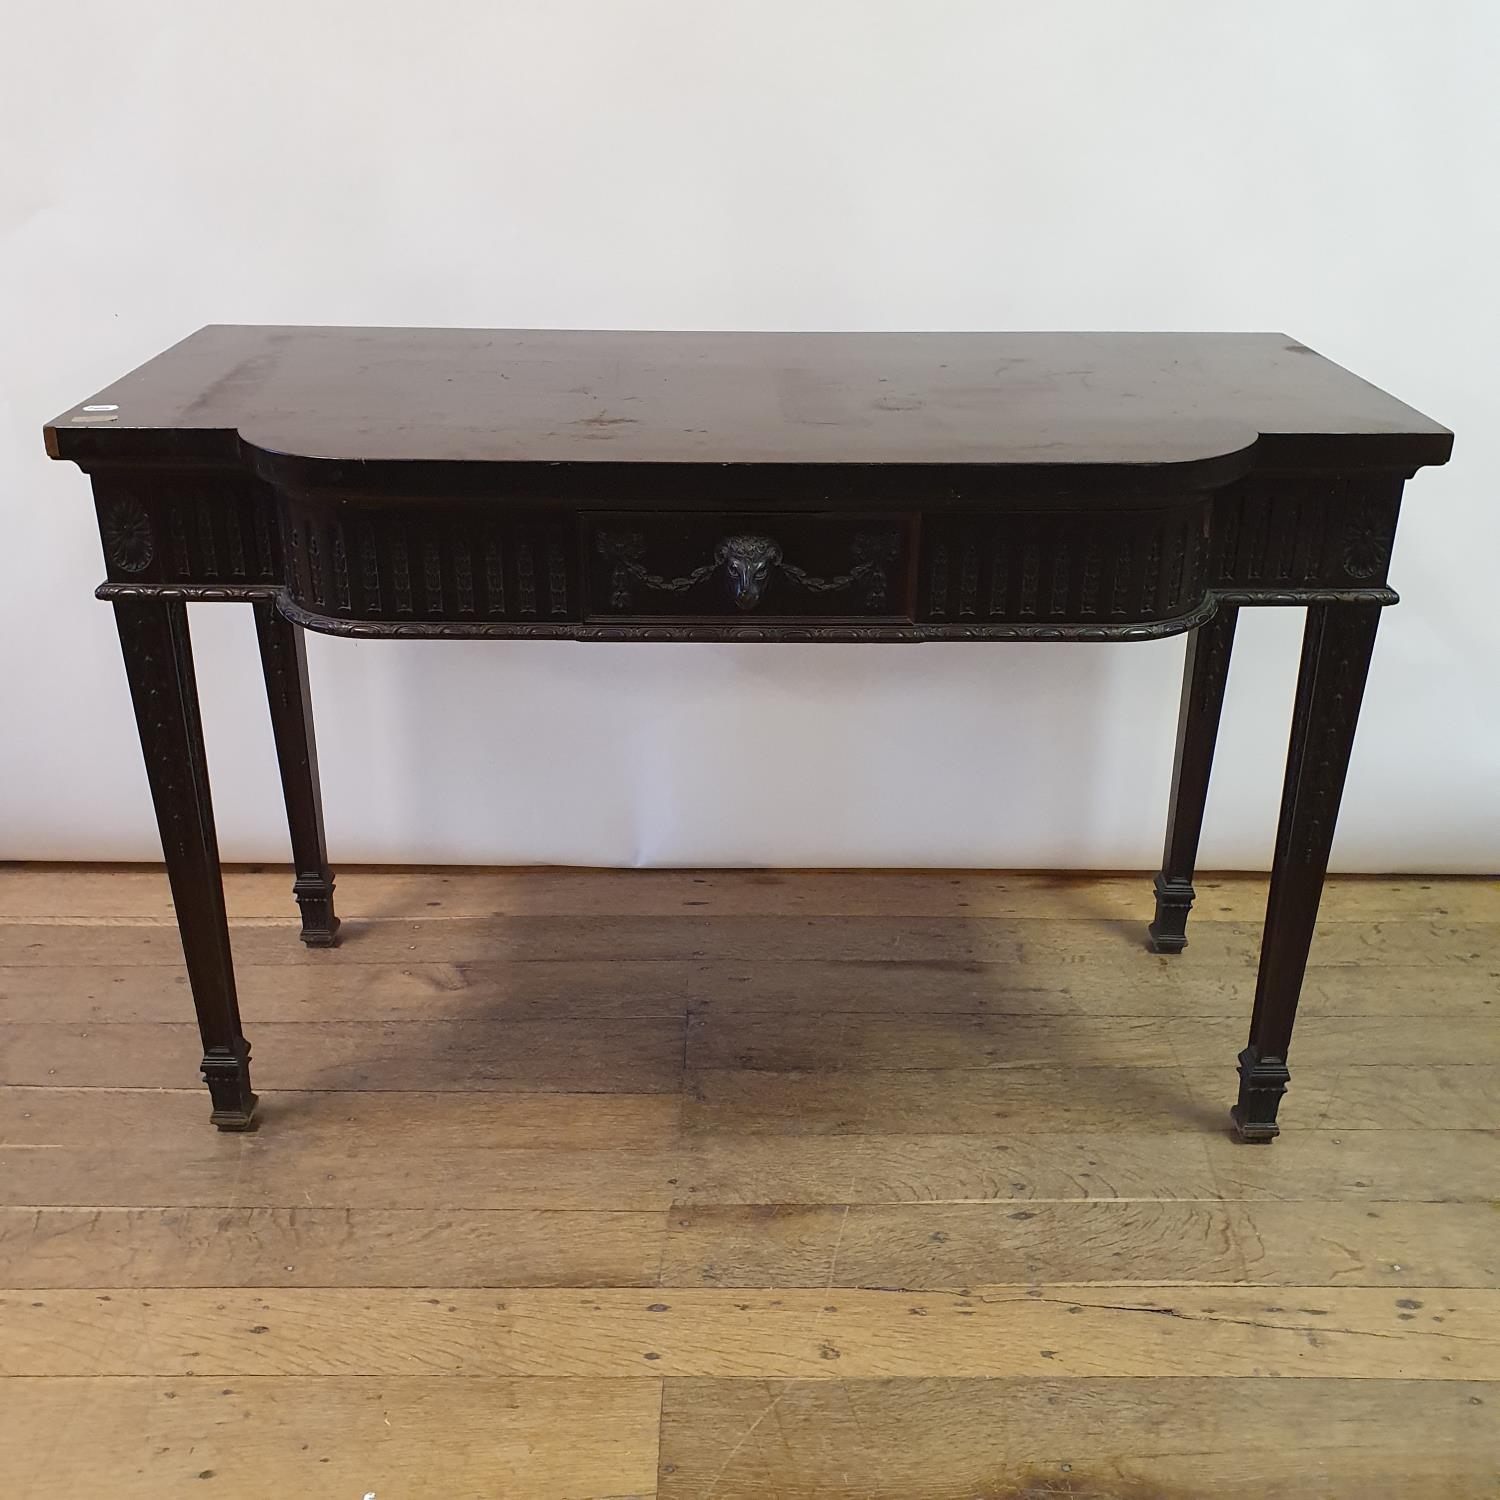 An early 20th century Adams revival mahogany side table, having a frieze drawer with carved rams